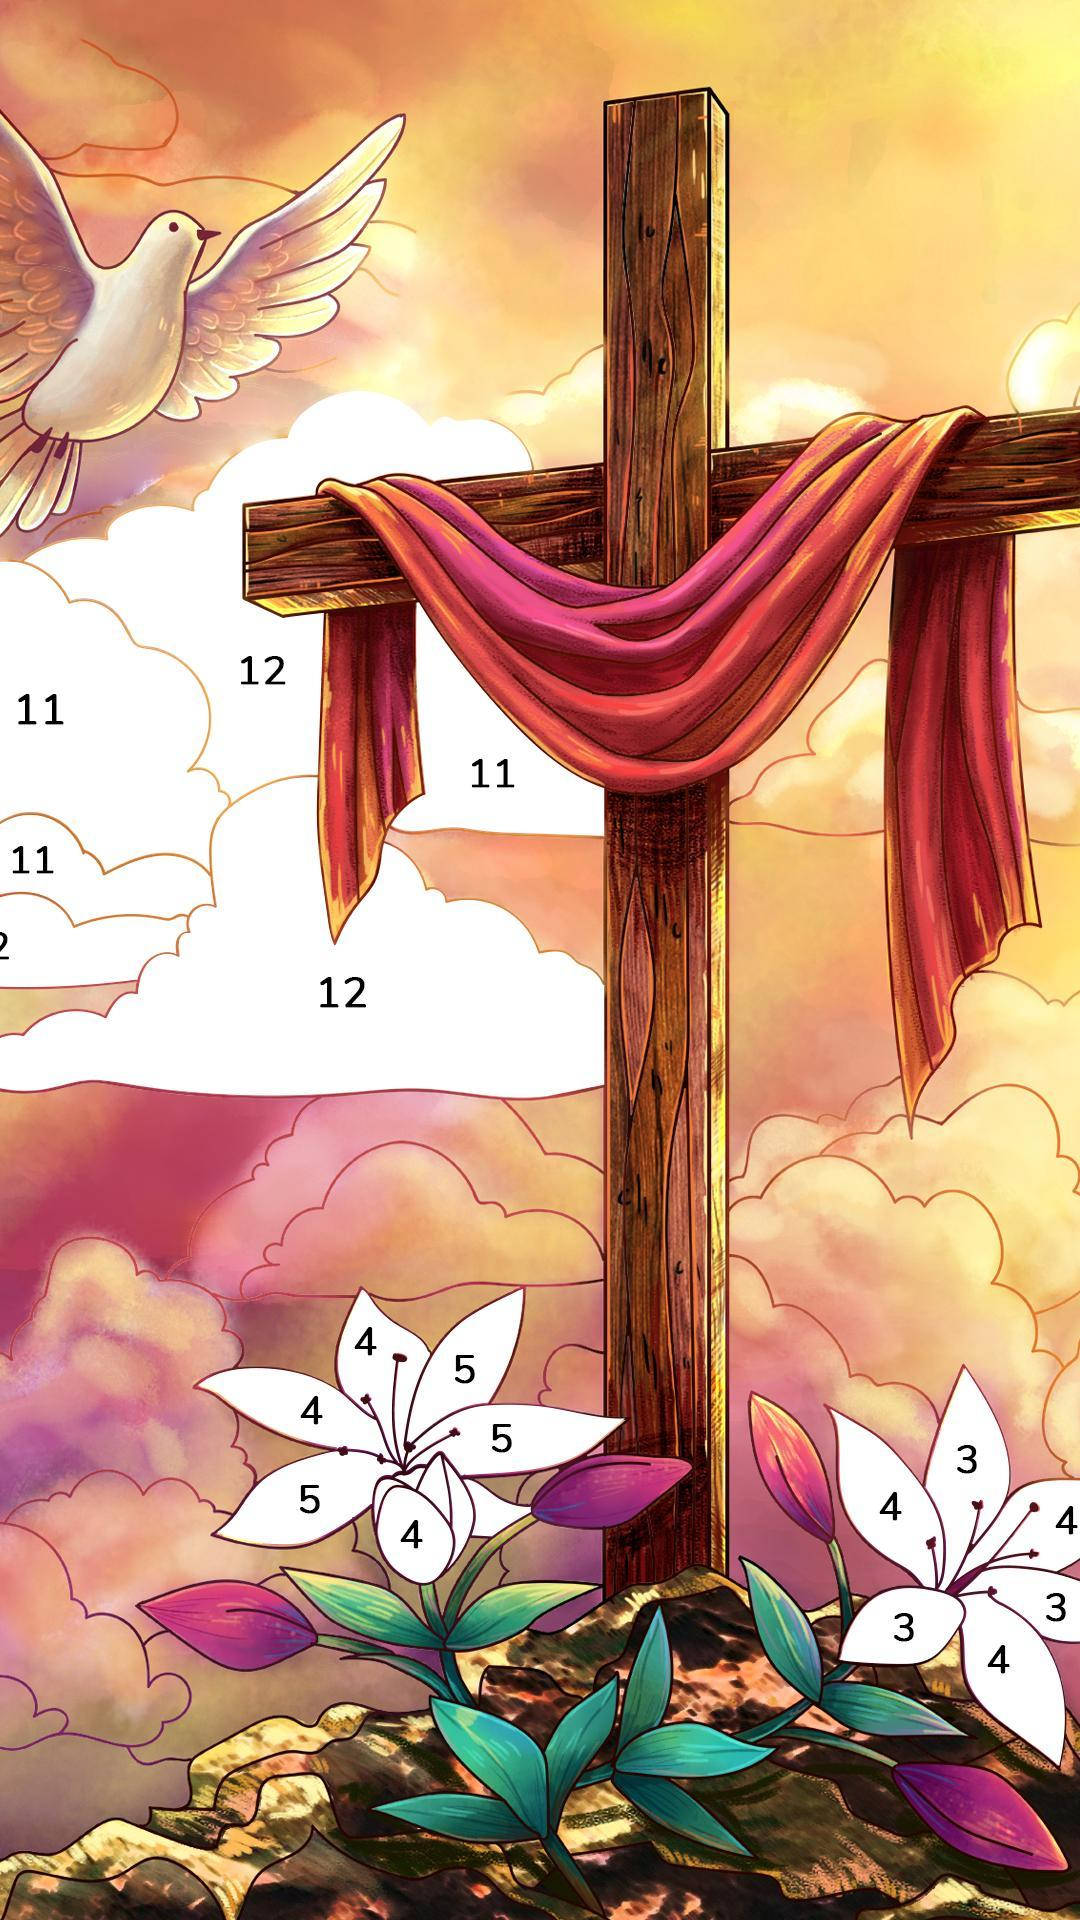 Bible Coloring Paint by Number, Free Bible Games 2.1.14 Screenshot 2